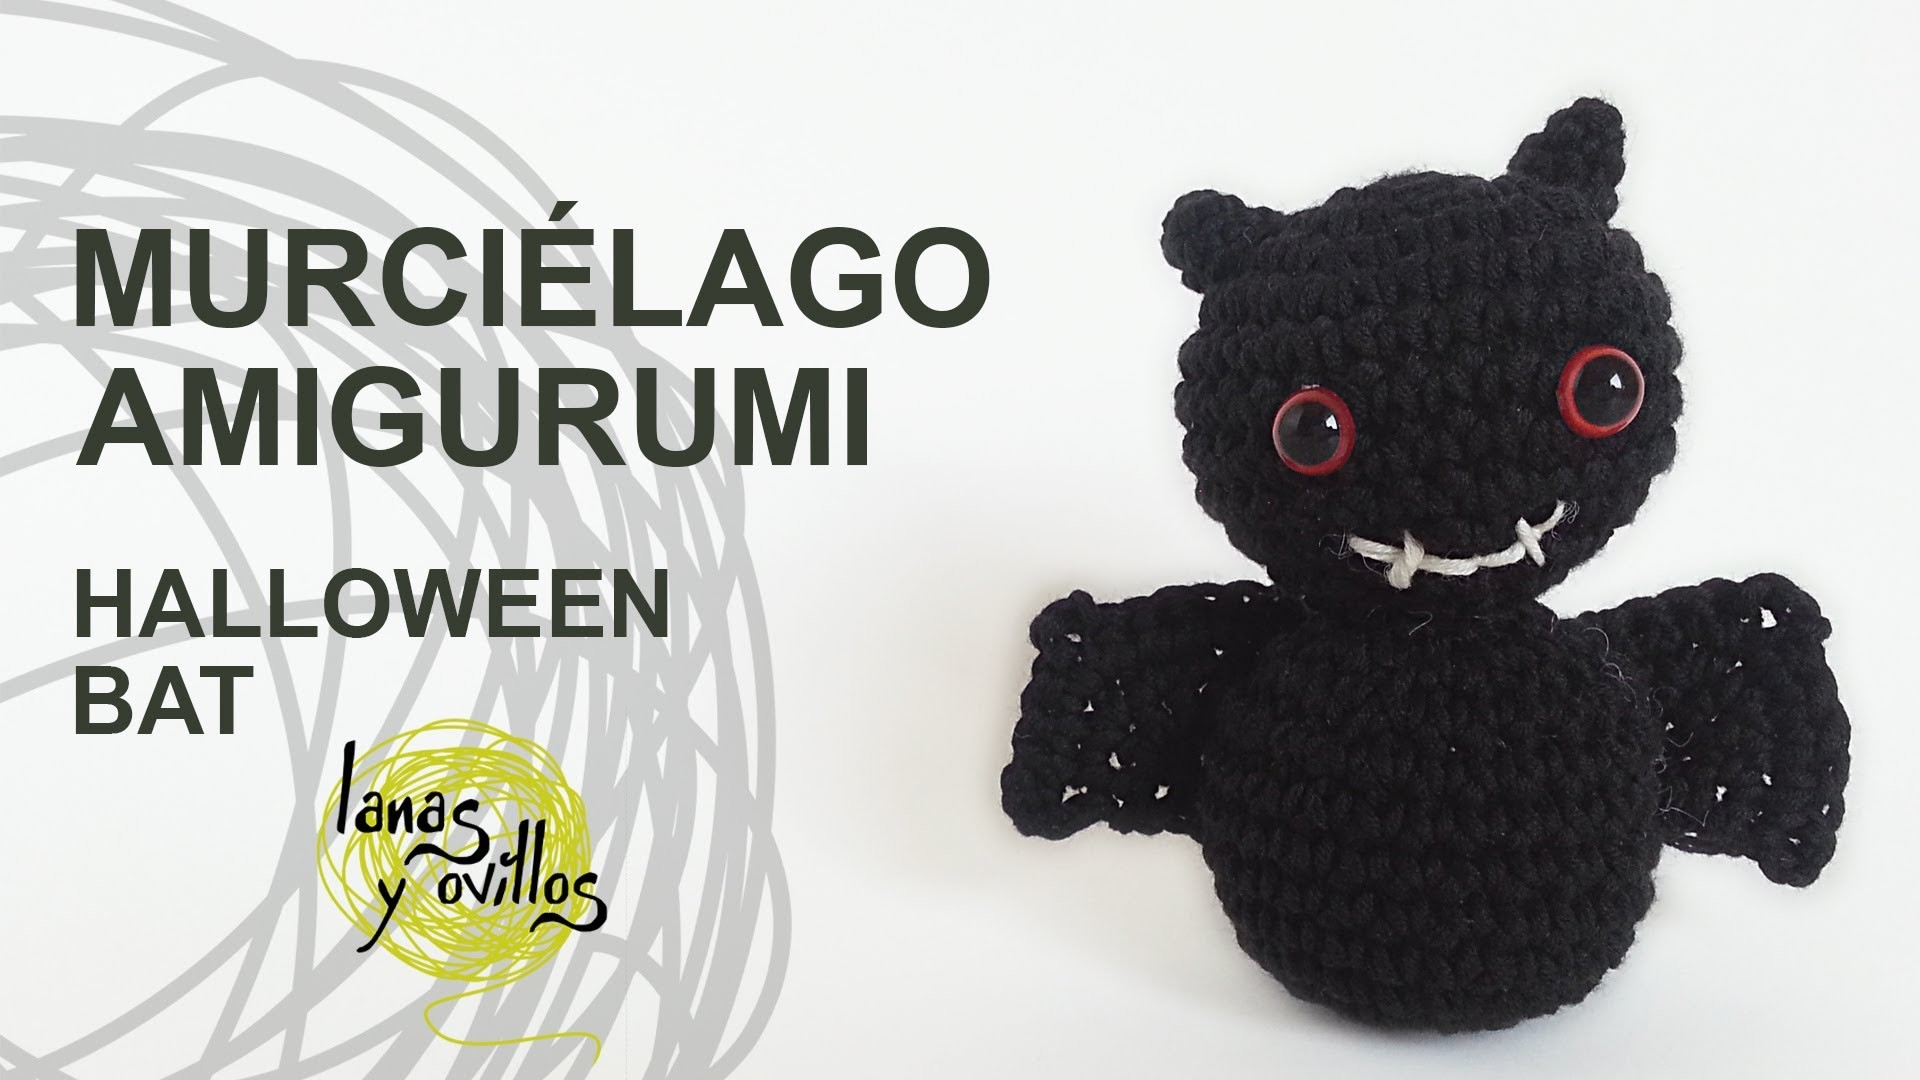 Tutorial Murciélago Amgirumi  Bat Crochet o Ganchillo (English Subtitles)